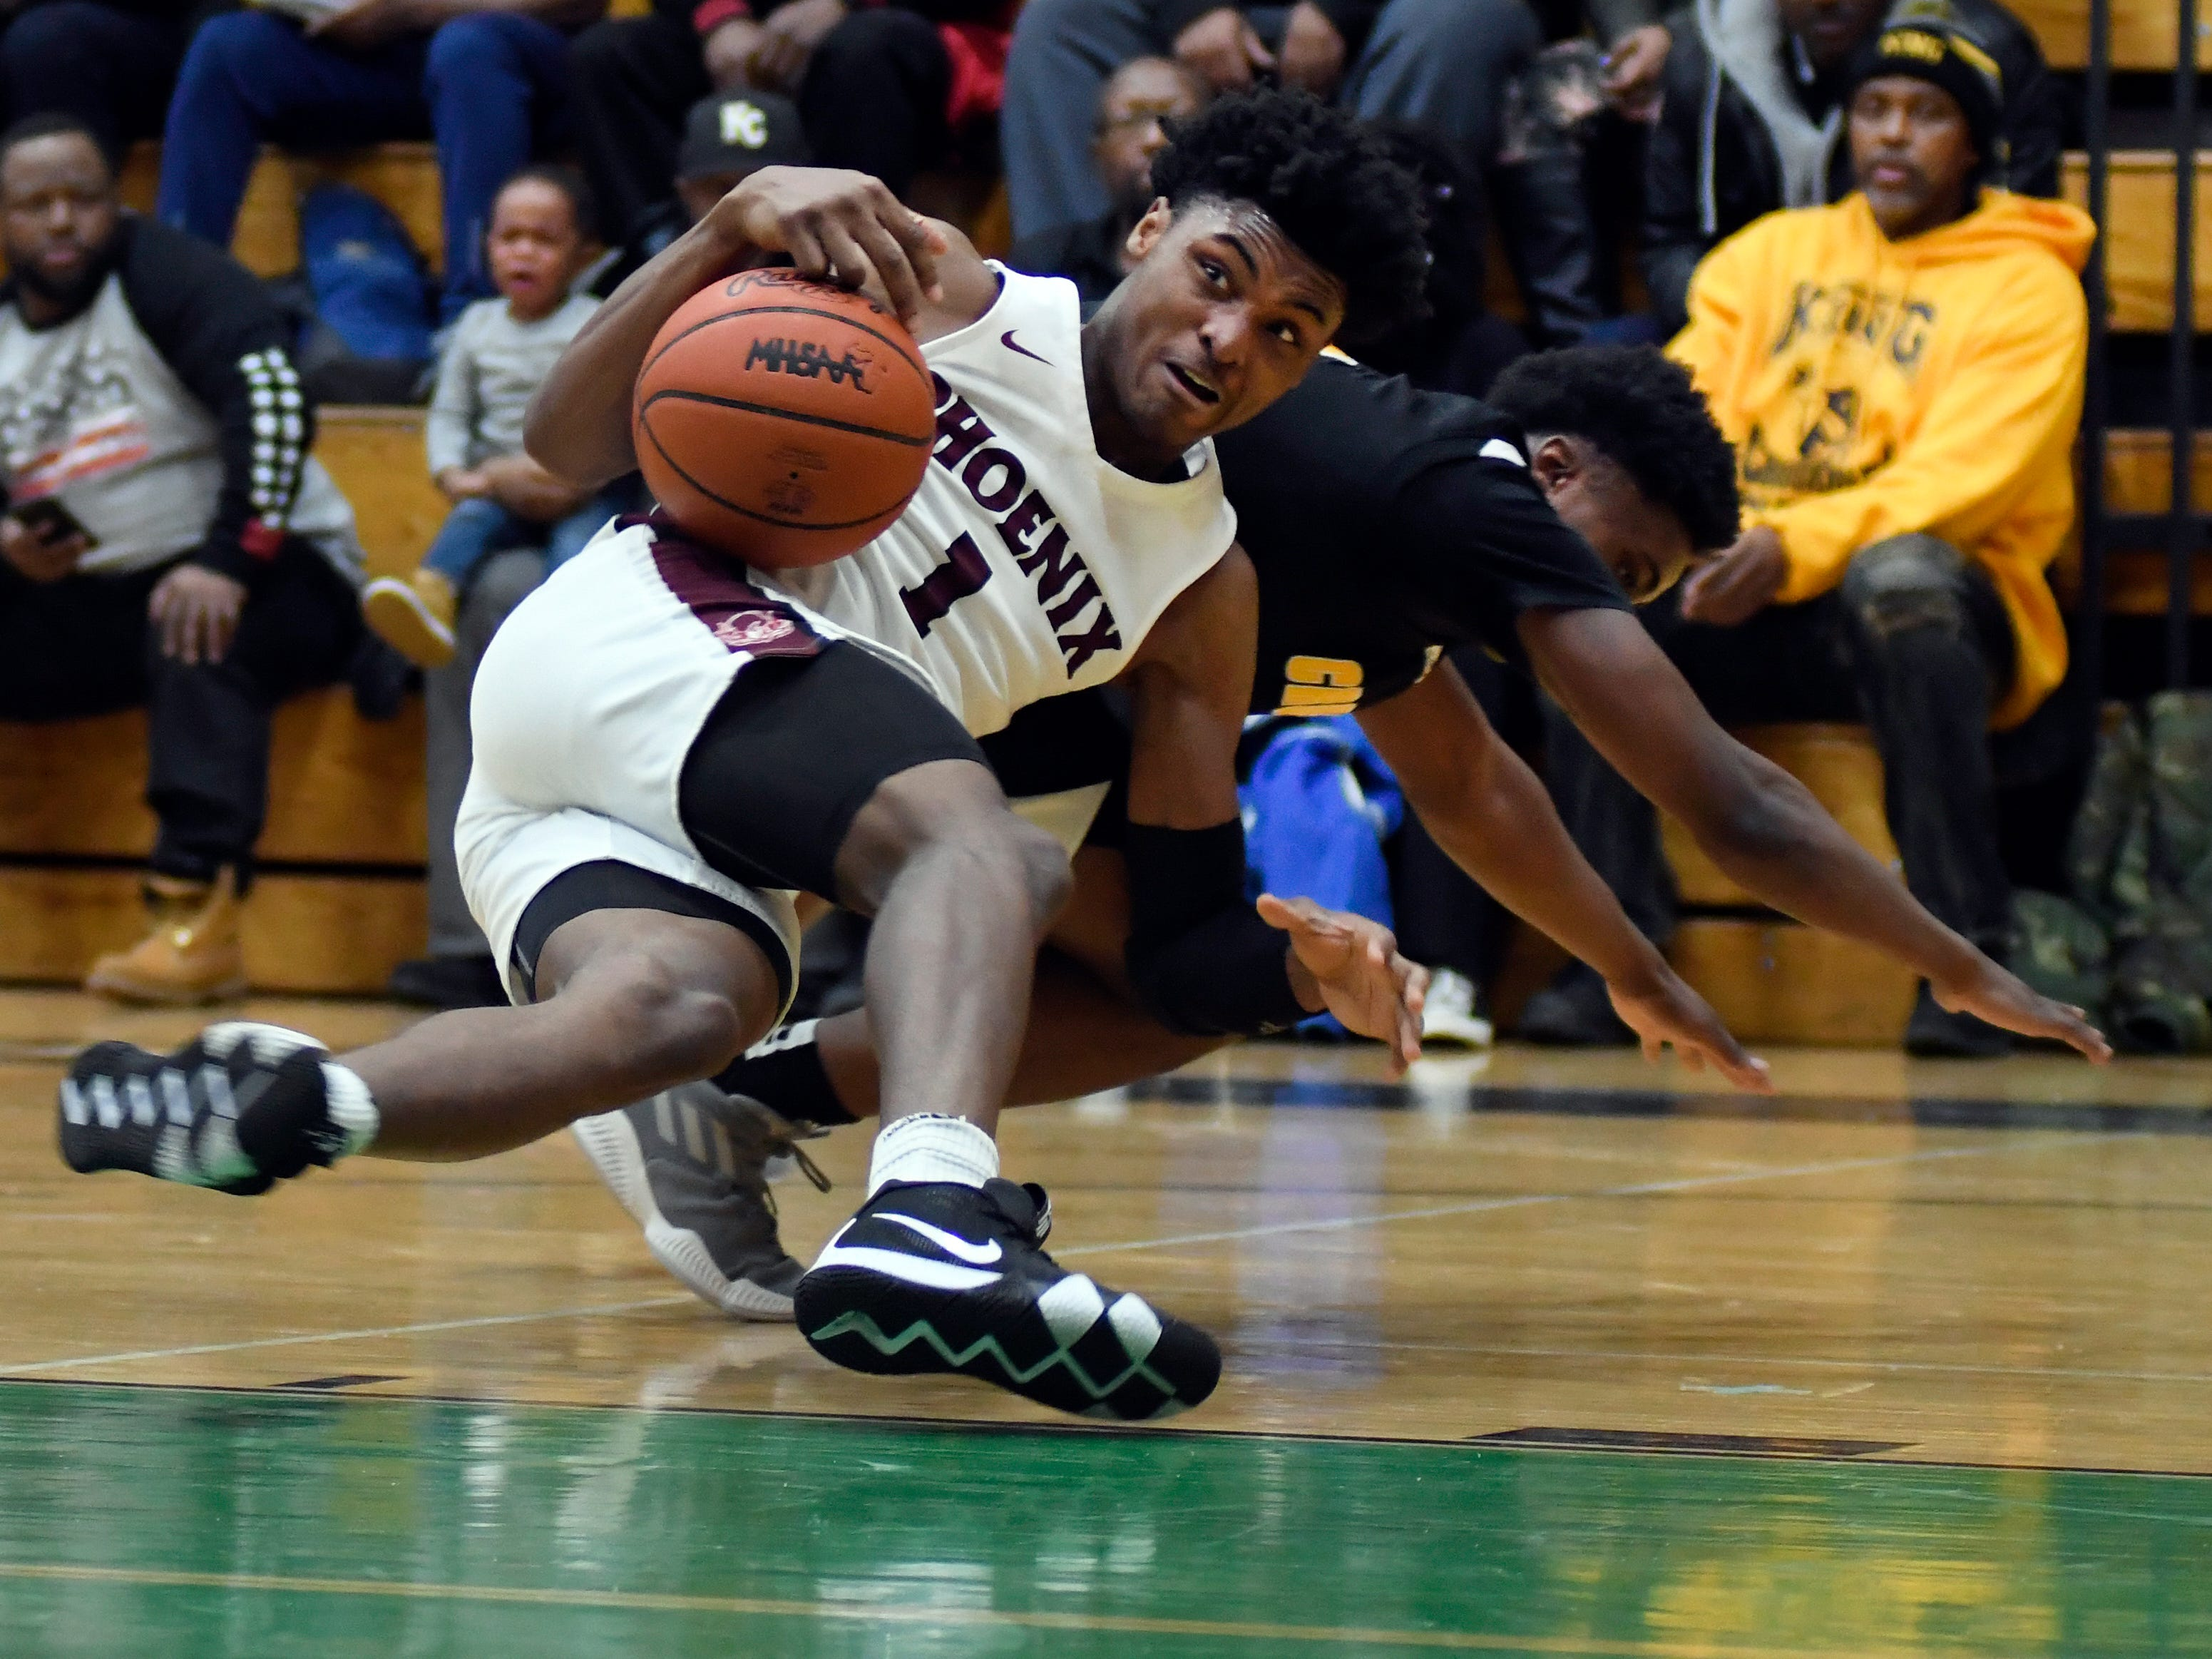 Battling for the loose ball are Detroit Renaissance's Kylin Grant (1) and Detroit King guard Jordan Whitford (3) during the second quarter.